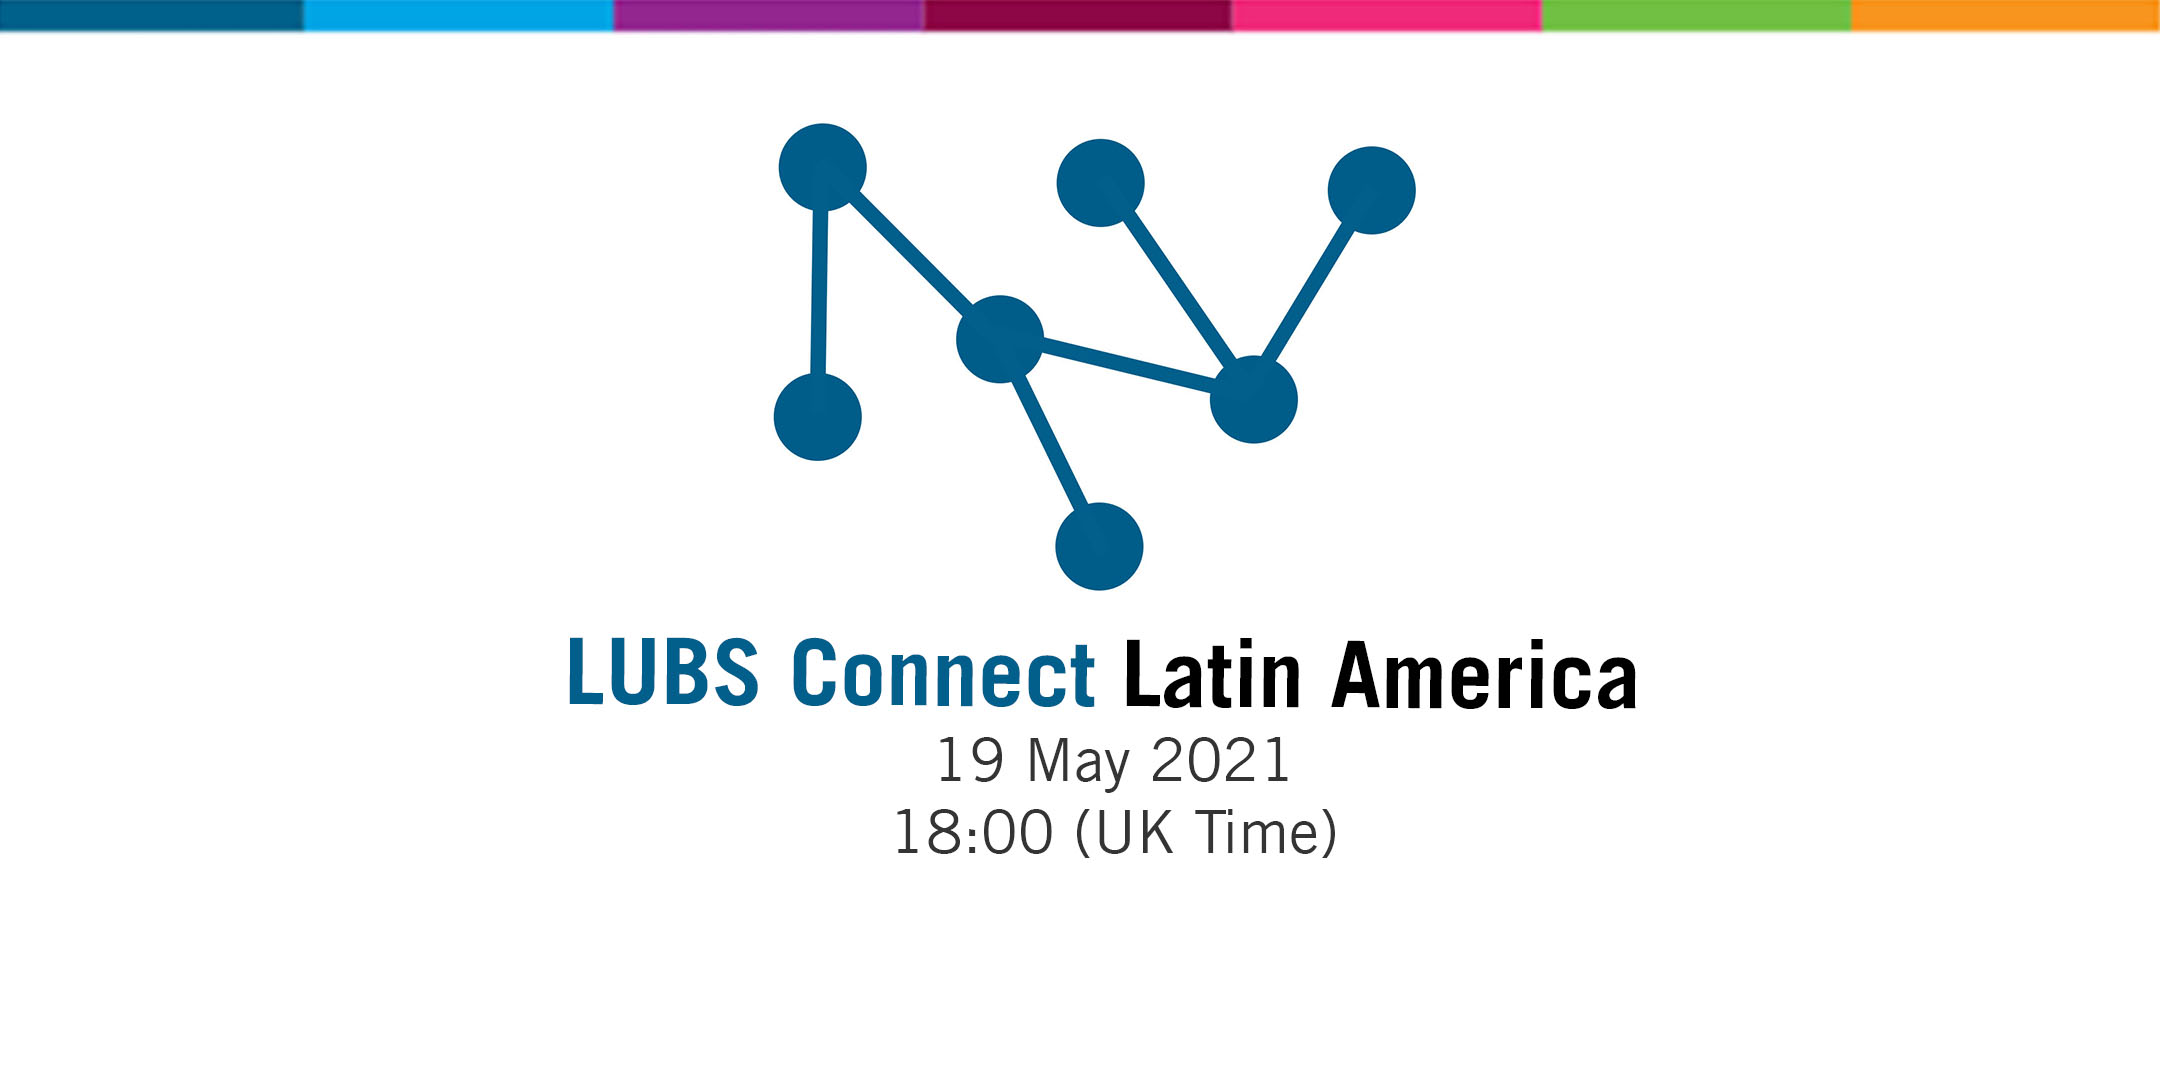 LUBS Connect Latin America